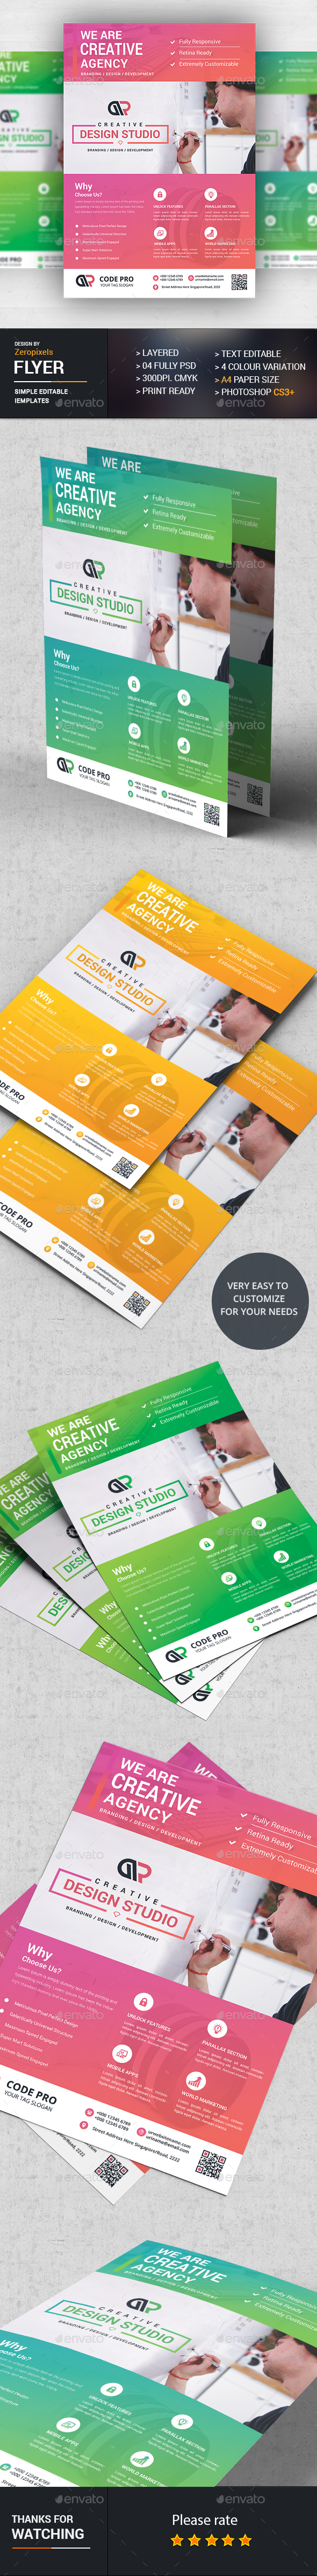 Web Design Flyer Template Psd Download Here HttpGraphicriver